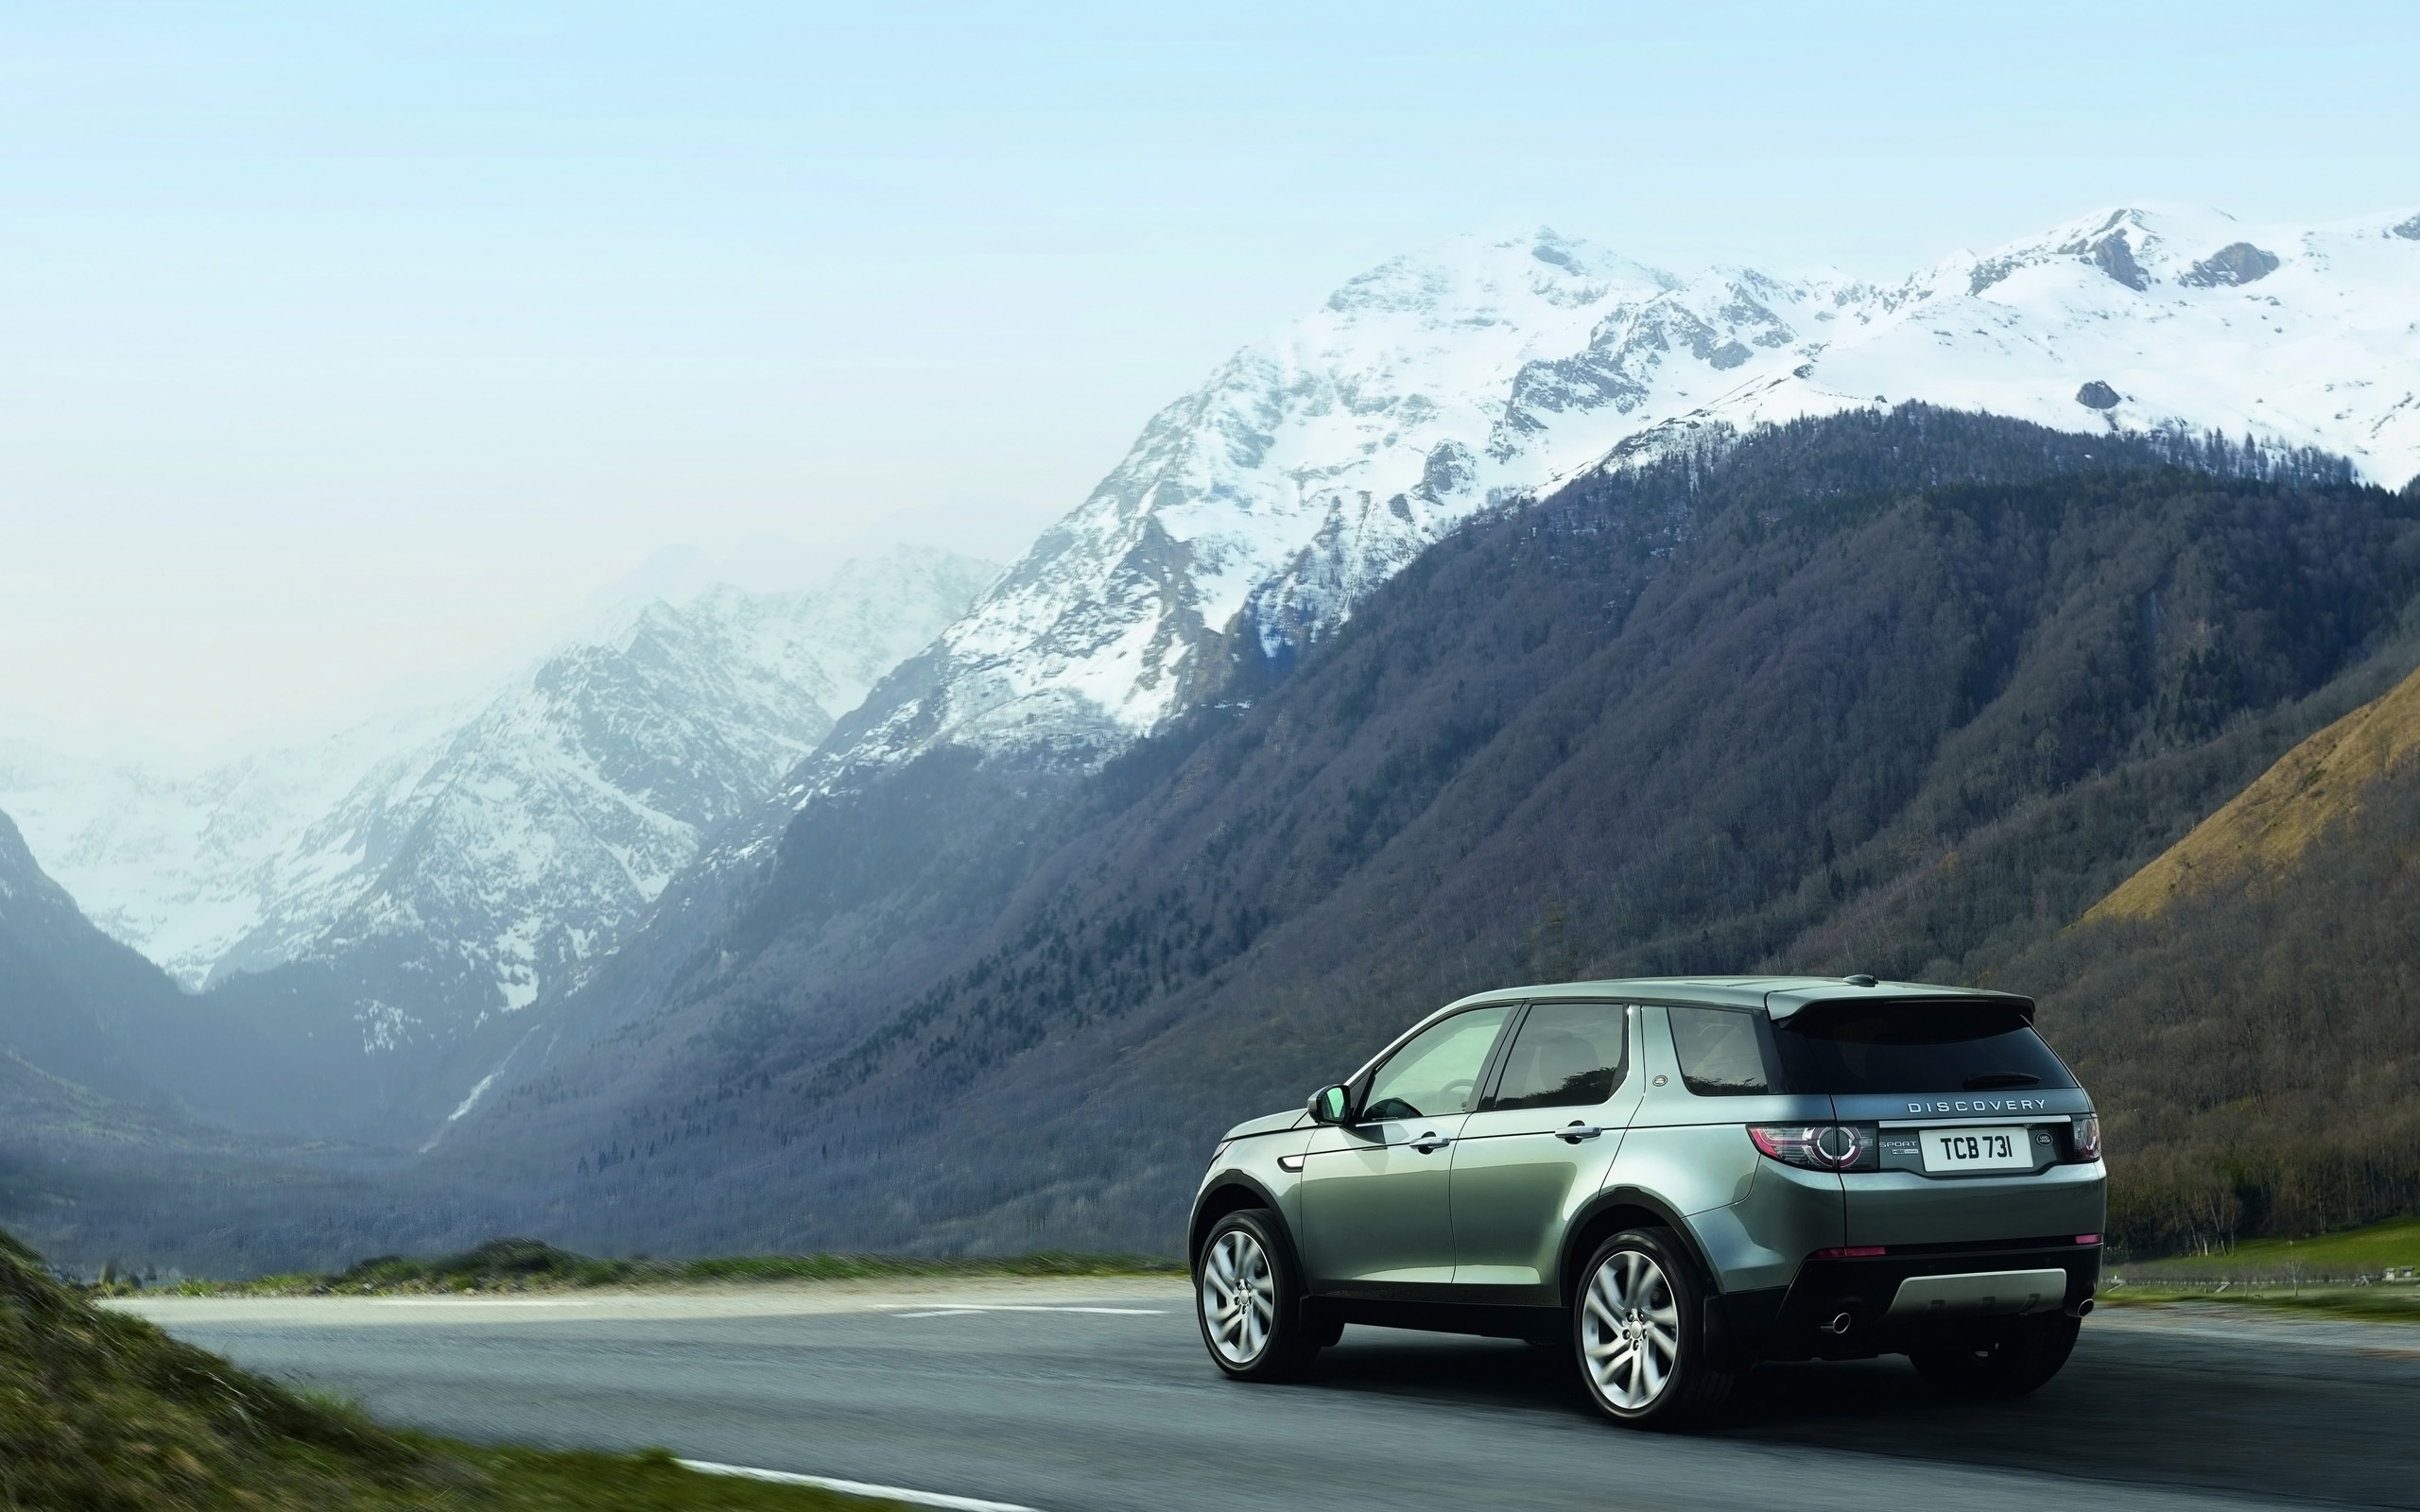 Discovery Sport Wallpaper Android: 2015 Land Rover Discovery Sport Motion Rear Angle